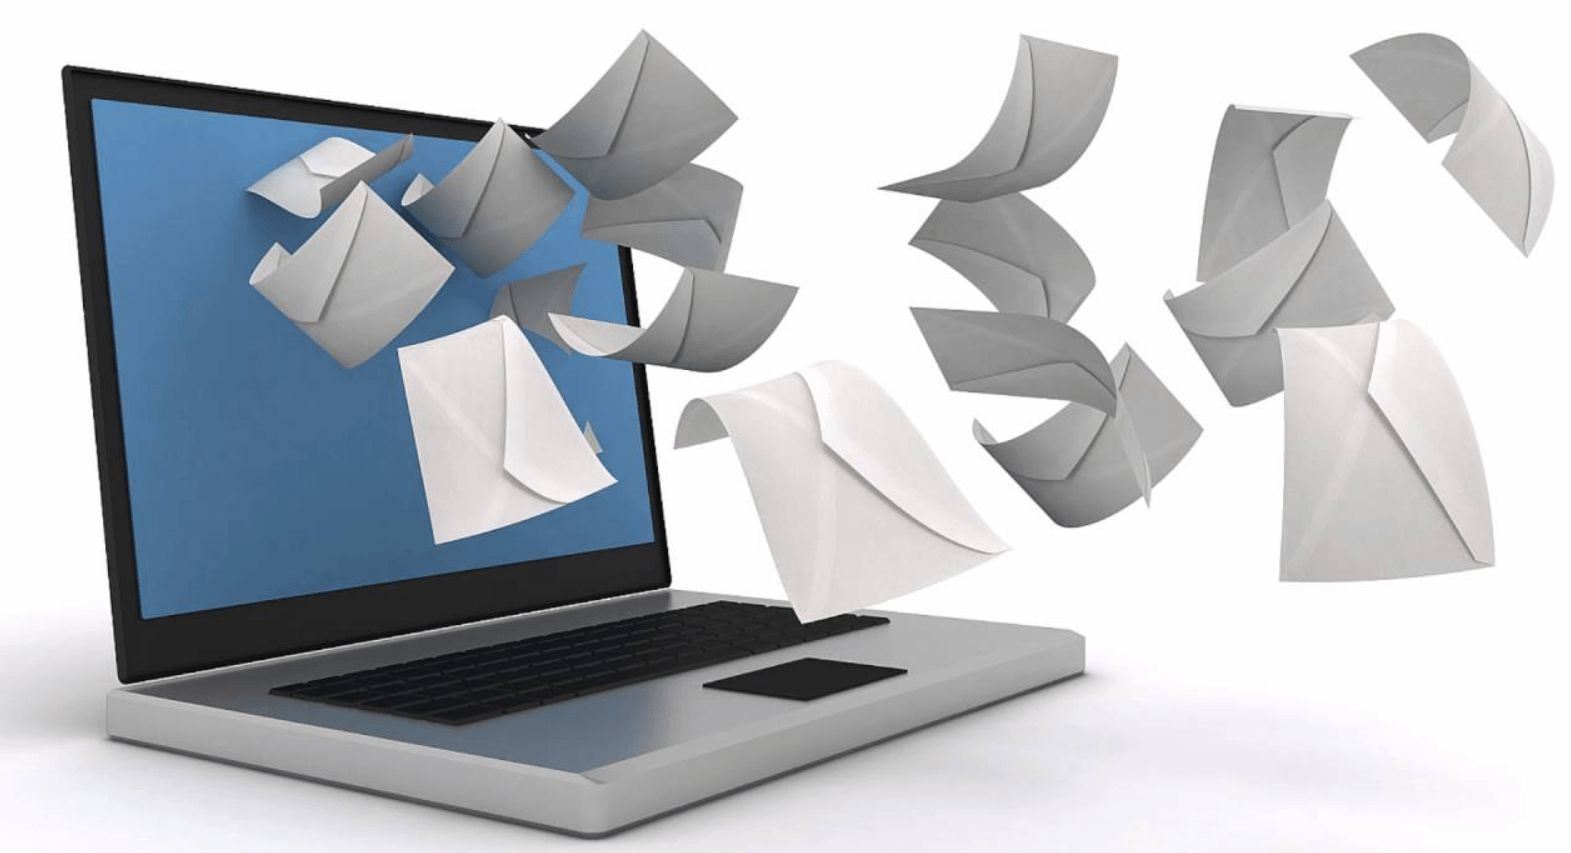 The Call to Reduce the Use of Email